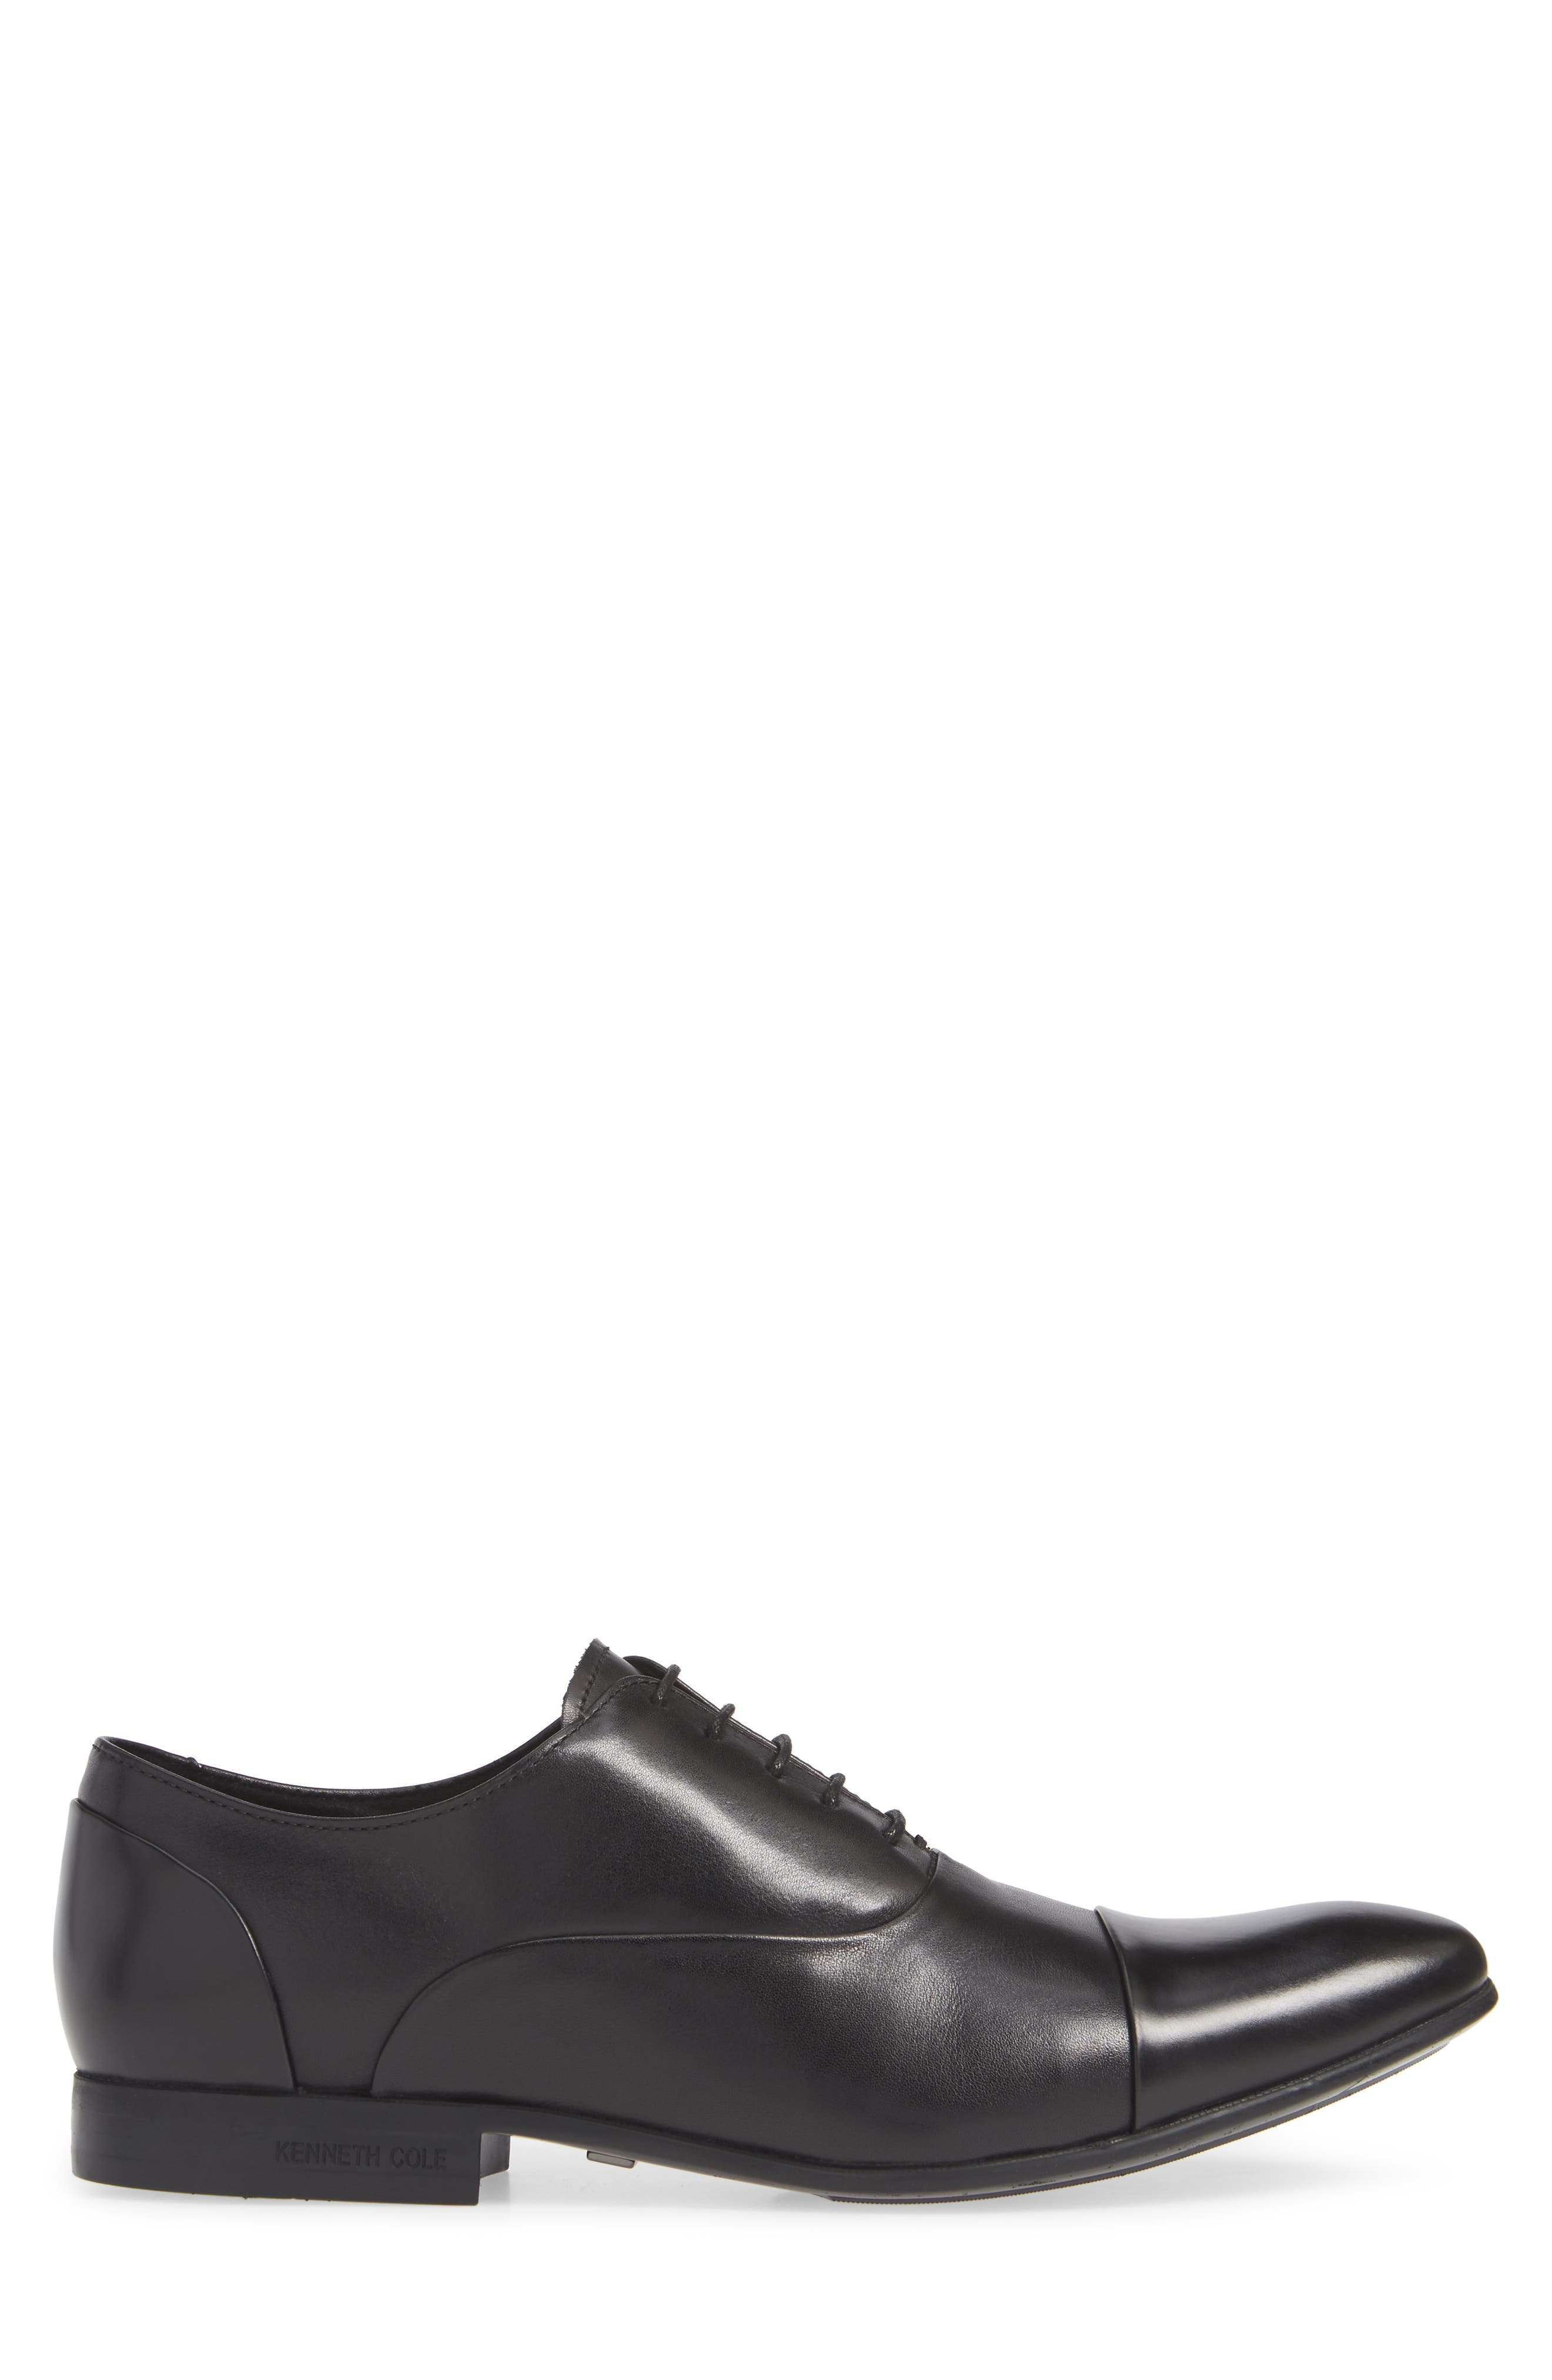 KENNETH COLE NEW YORK,                             Mix Cap Toe Oxford,                             Alternate thumbnail 3, color,                             008